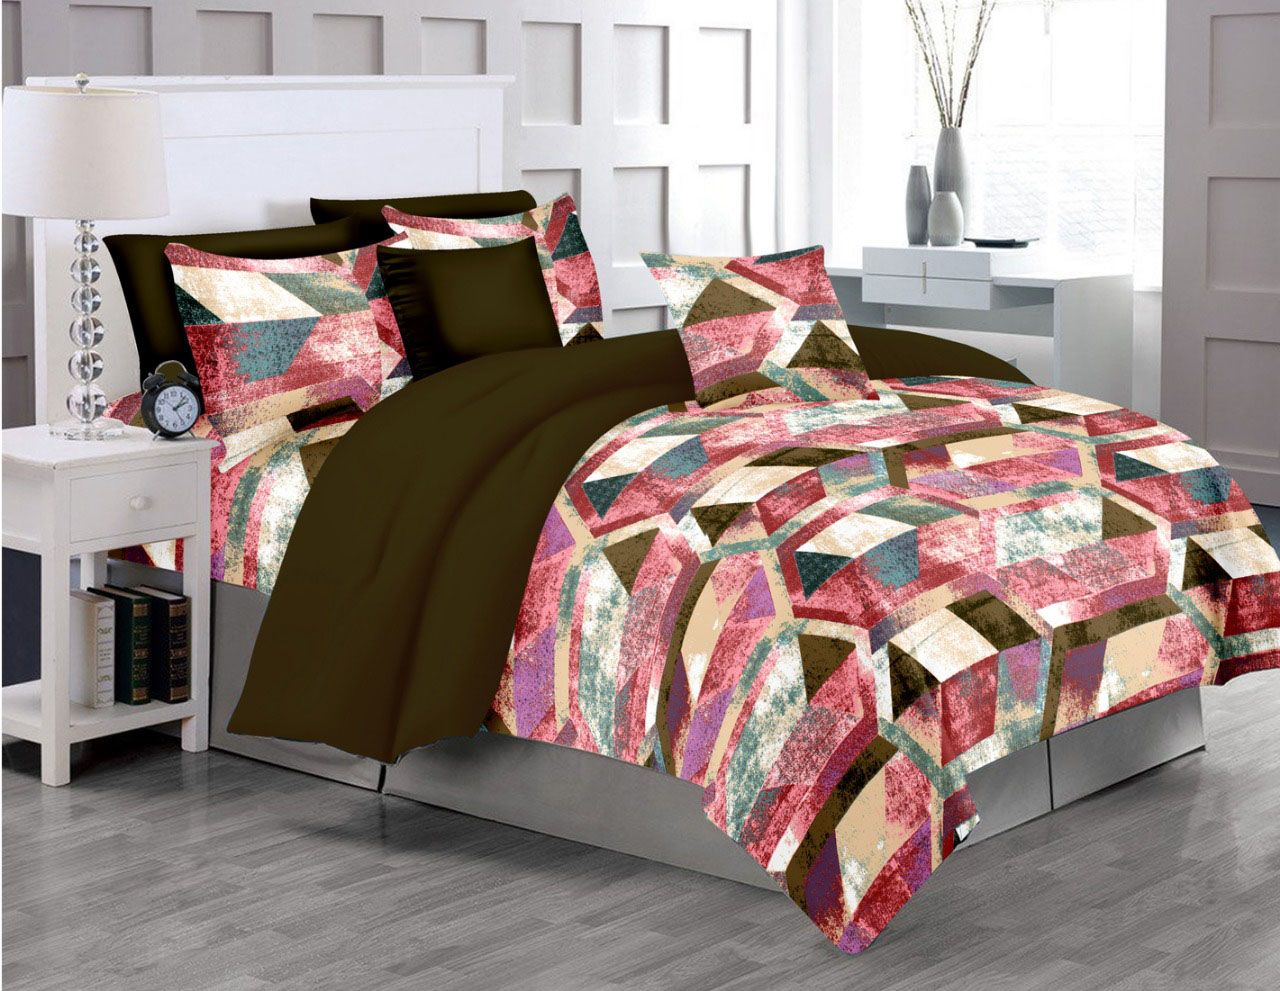 Double printed bed sheets in 2020 Wholesale bedding